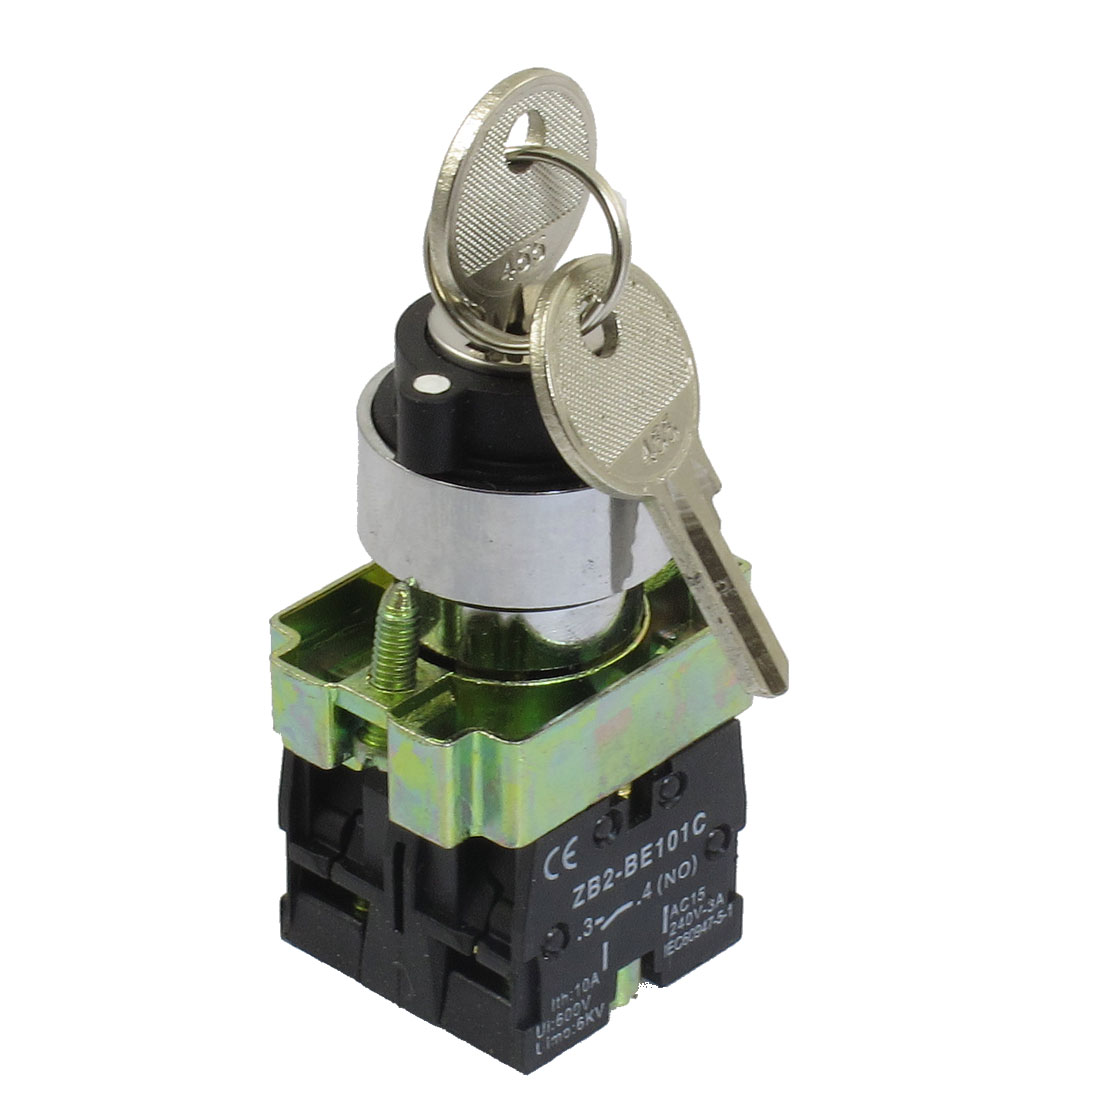 22mm Locking 2 NO Three 3-Position Keylock Selector Select Switch ZB2-BE101C